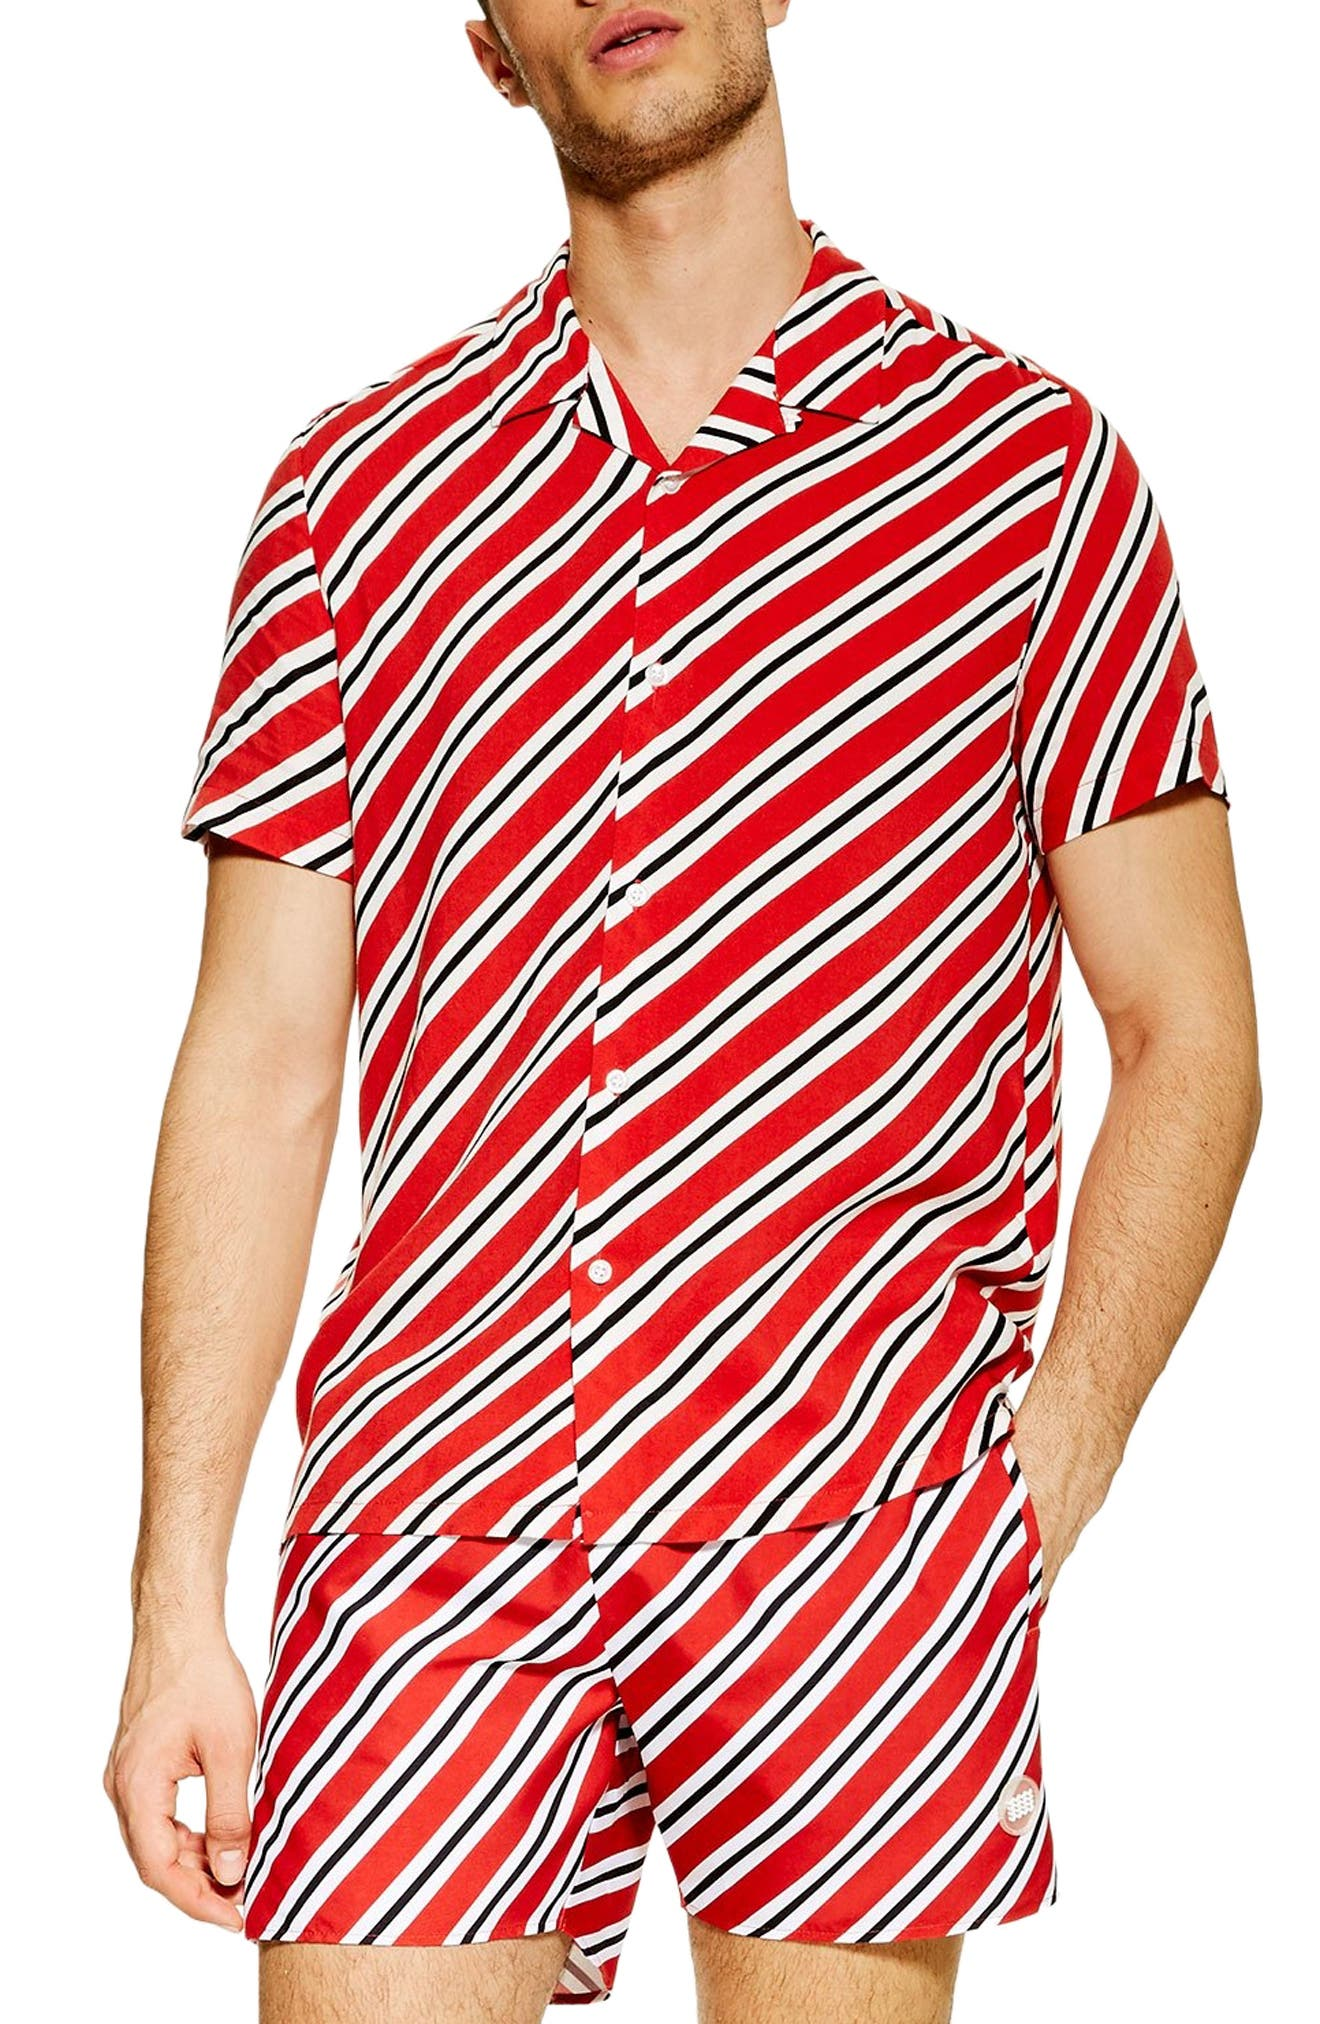 Vintage Men's Swimsuits – 1930s to 1970s History Mens Topman Diagonal Stripe Short Sleeve Shirt $26.98 AT vintagedancer.com